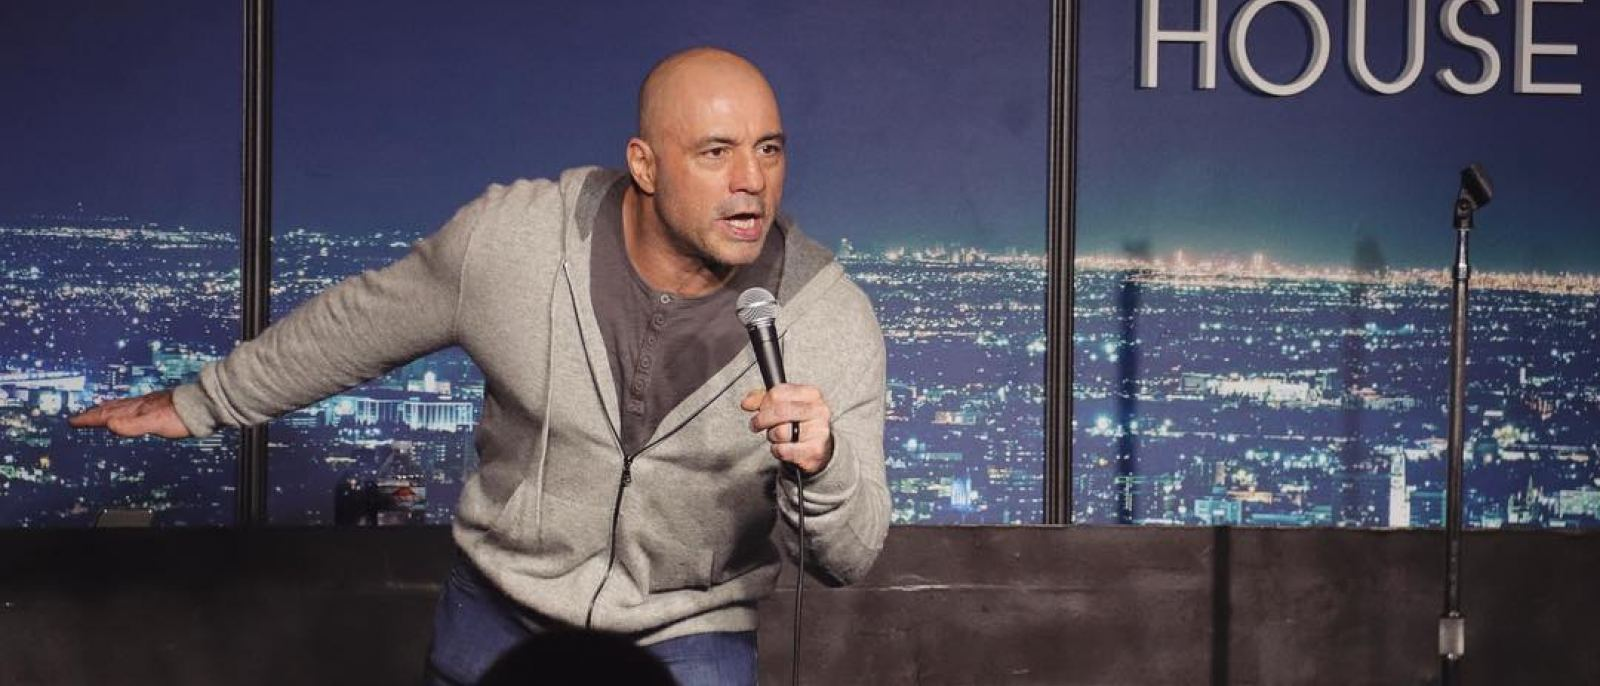 Joe Rogan on stage at The Ice House